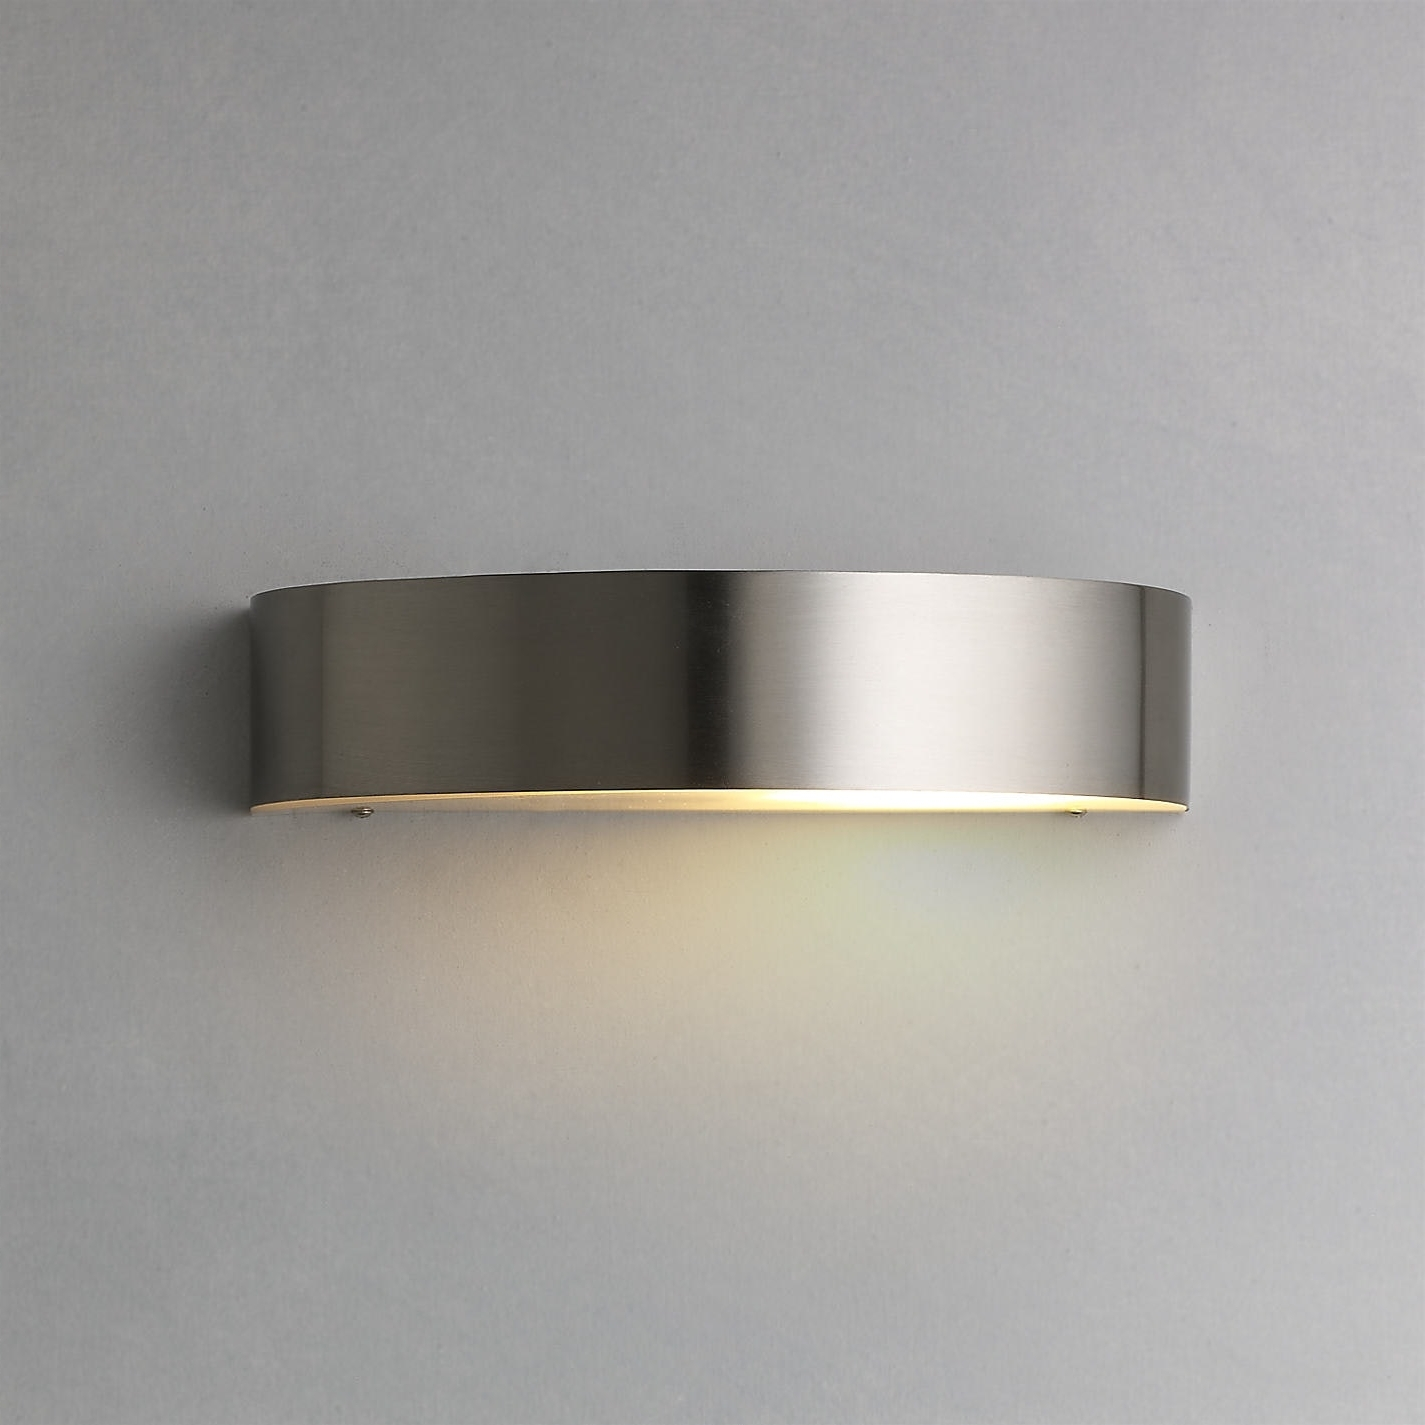 2019 Outdoor Wall Lights At John Lewis Regarding Bathroom Wall Lights John Lewis Lighting Debenhams Dunelm Laura (Gallery 1 of 20)